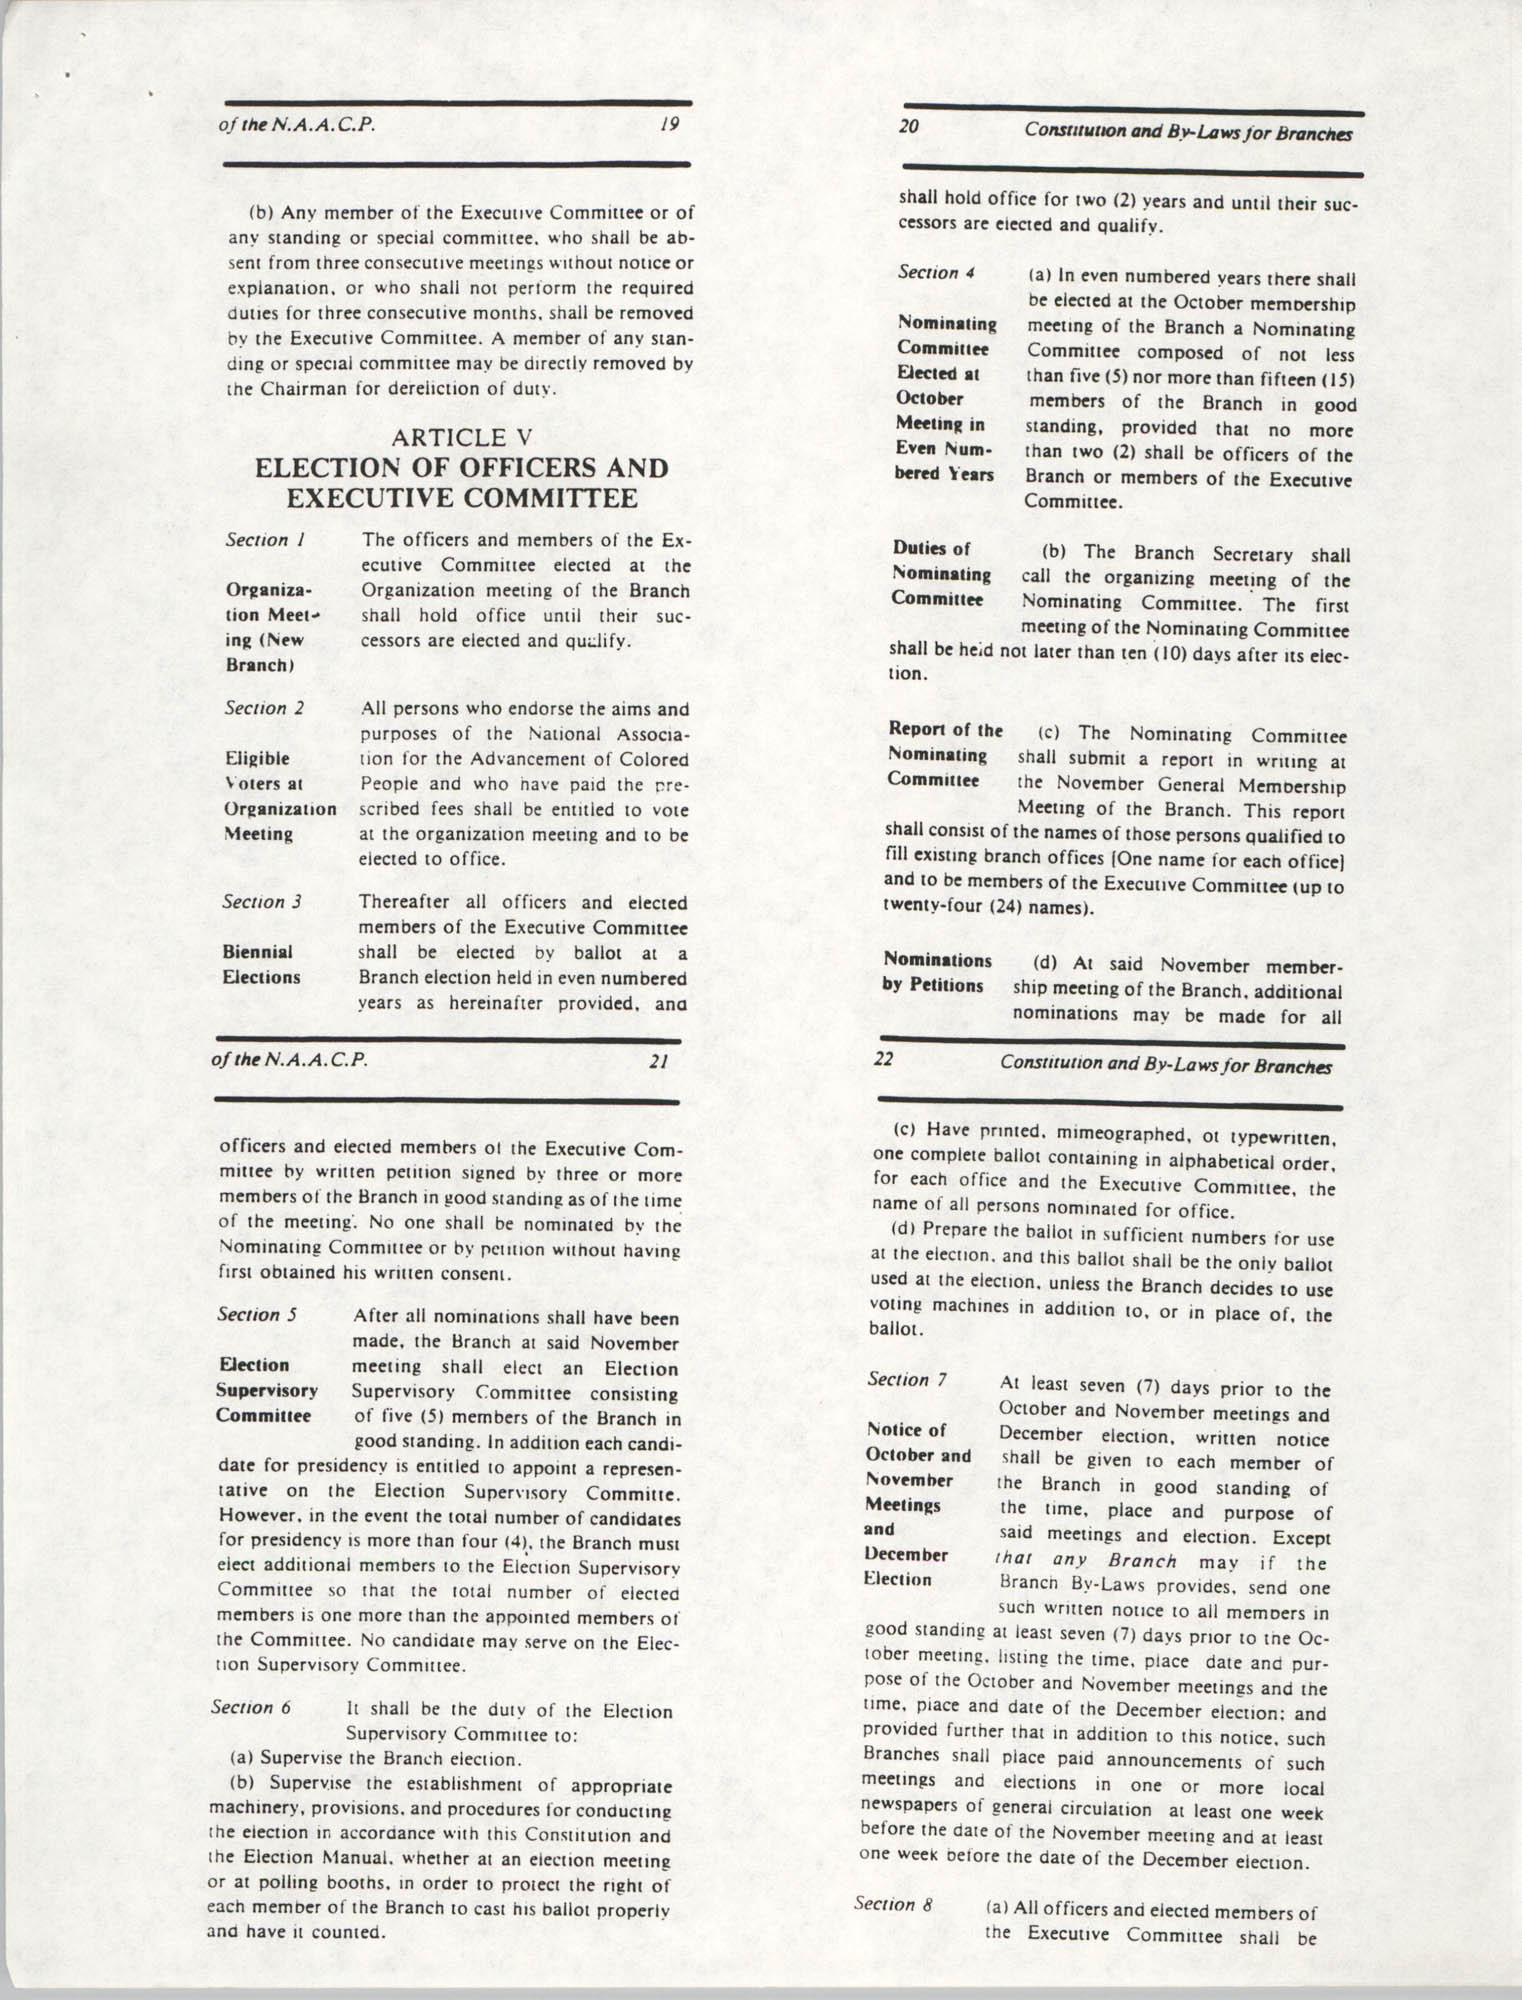 Constitution and By-Laws for Branches of the NAACP, May 1988, Pages 19-22